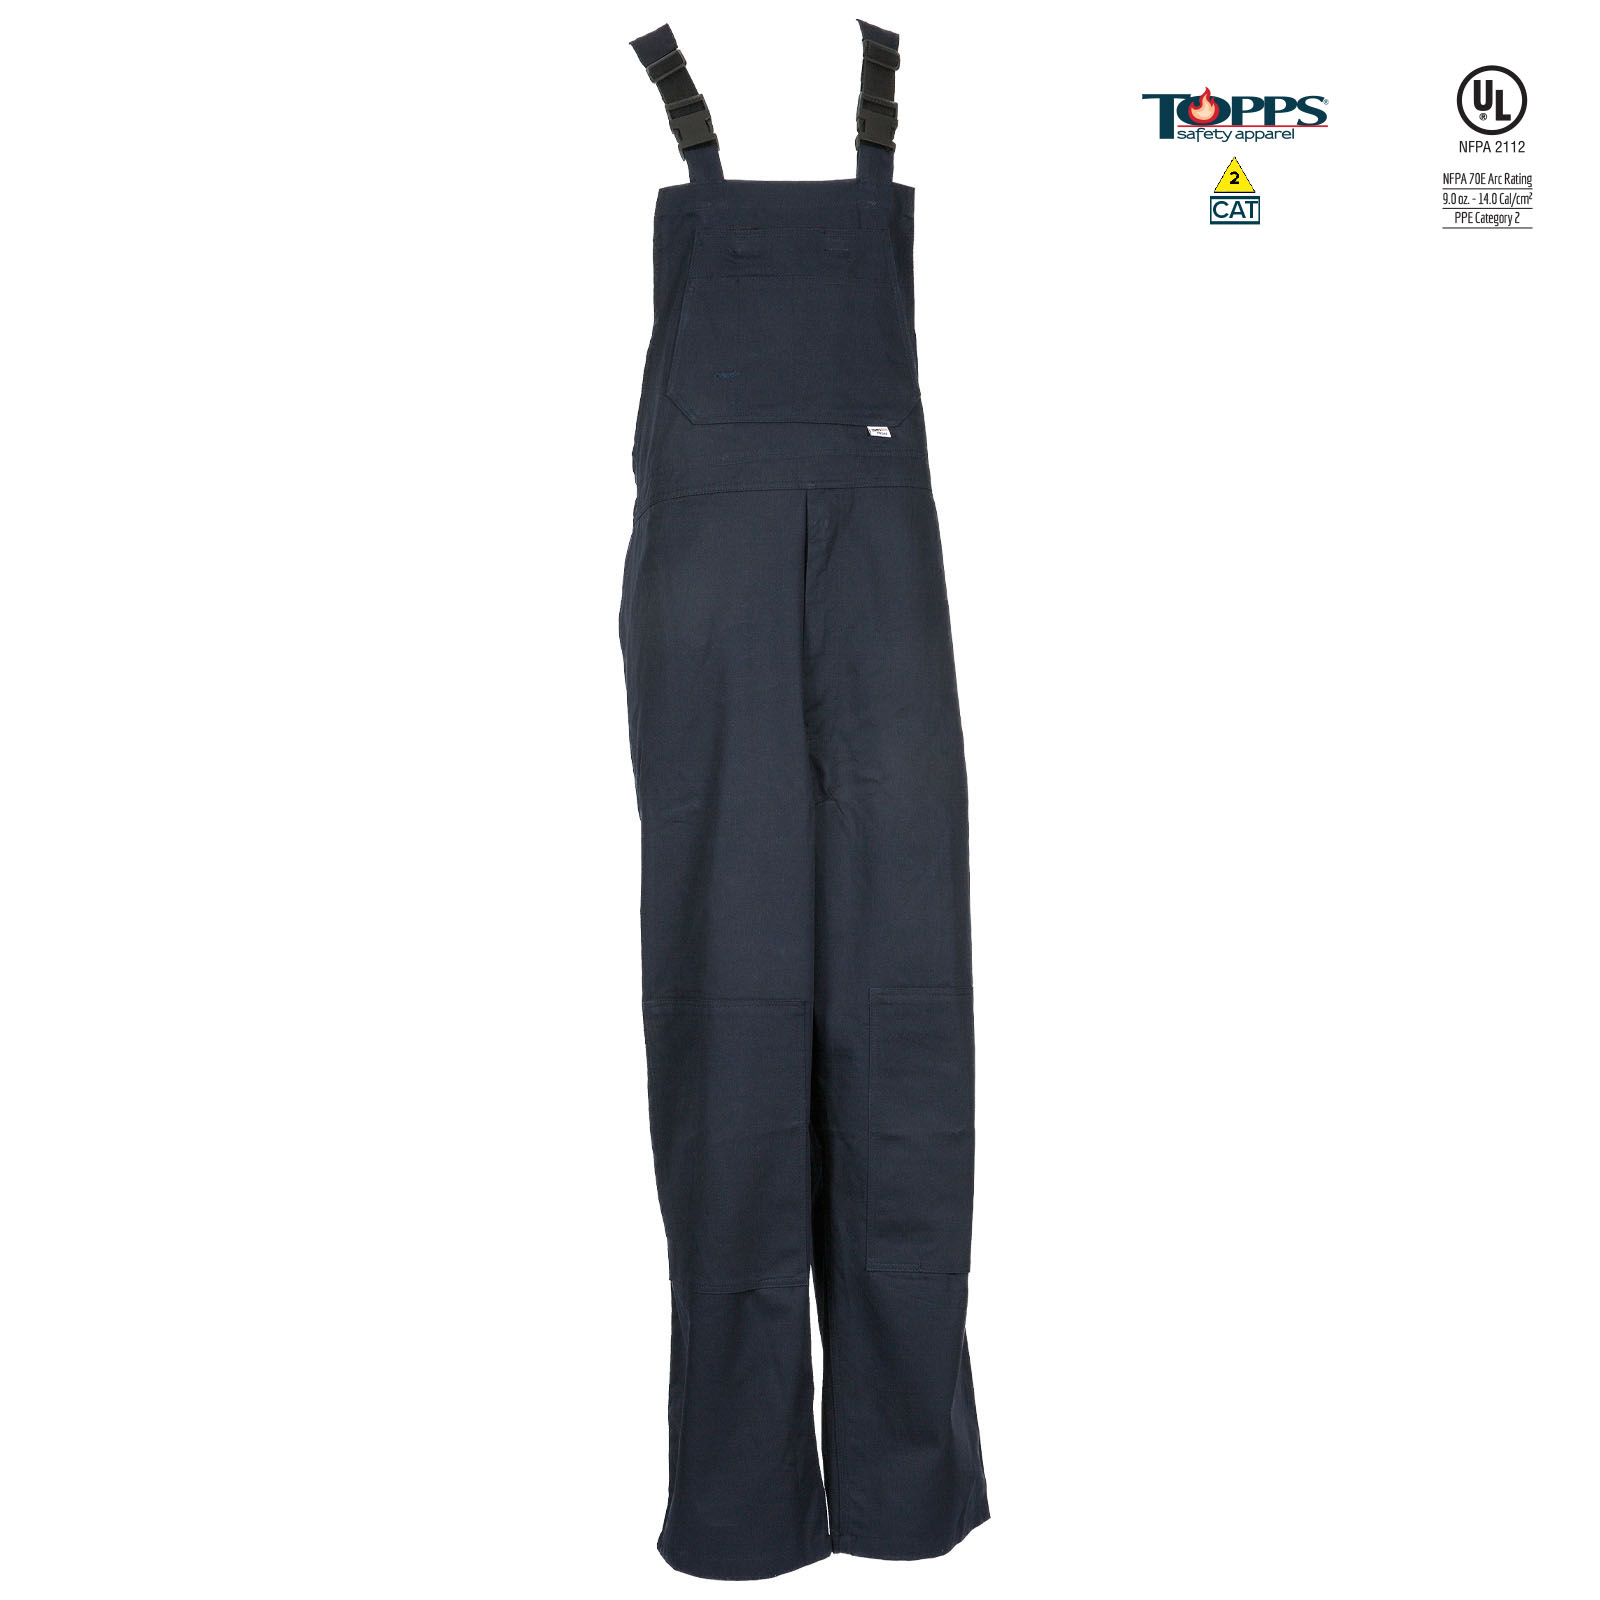 PEAK FR 88/12 Cotton/Nylon Blend Flame Resistant Unlined Bib Front Overall-TOPPS